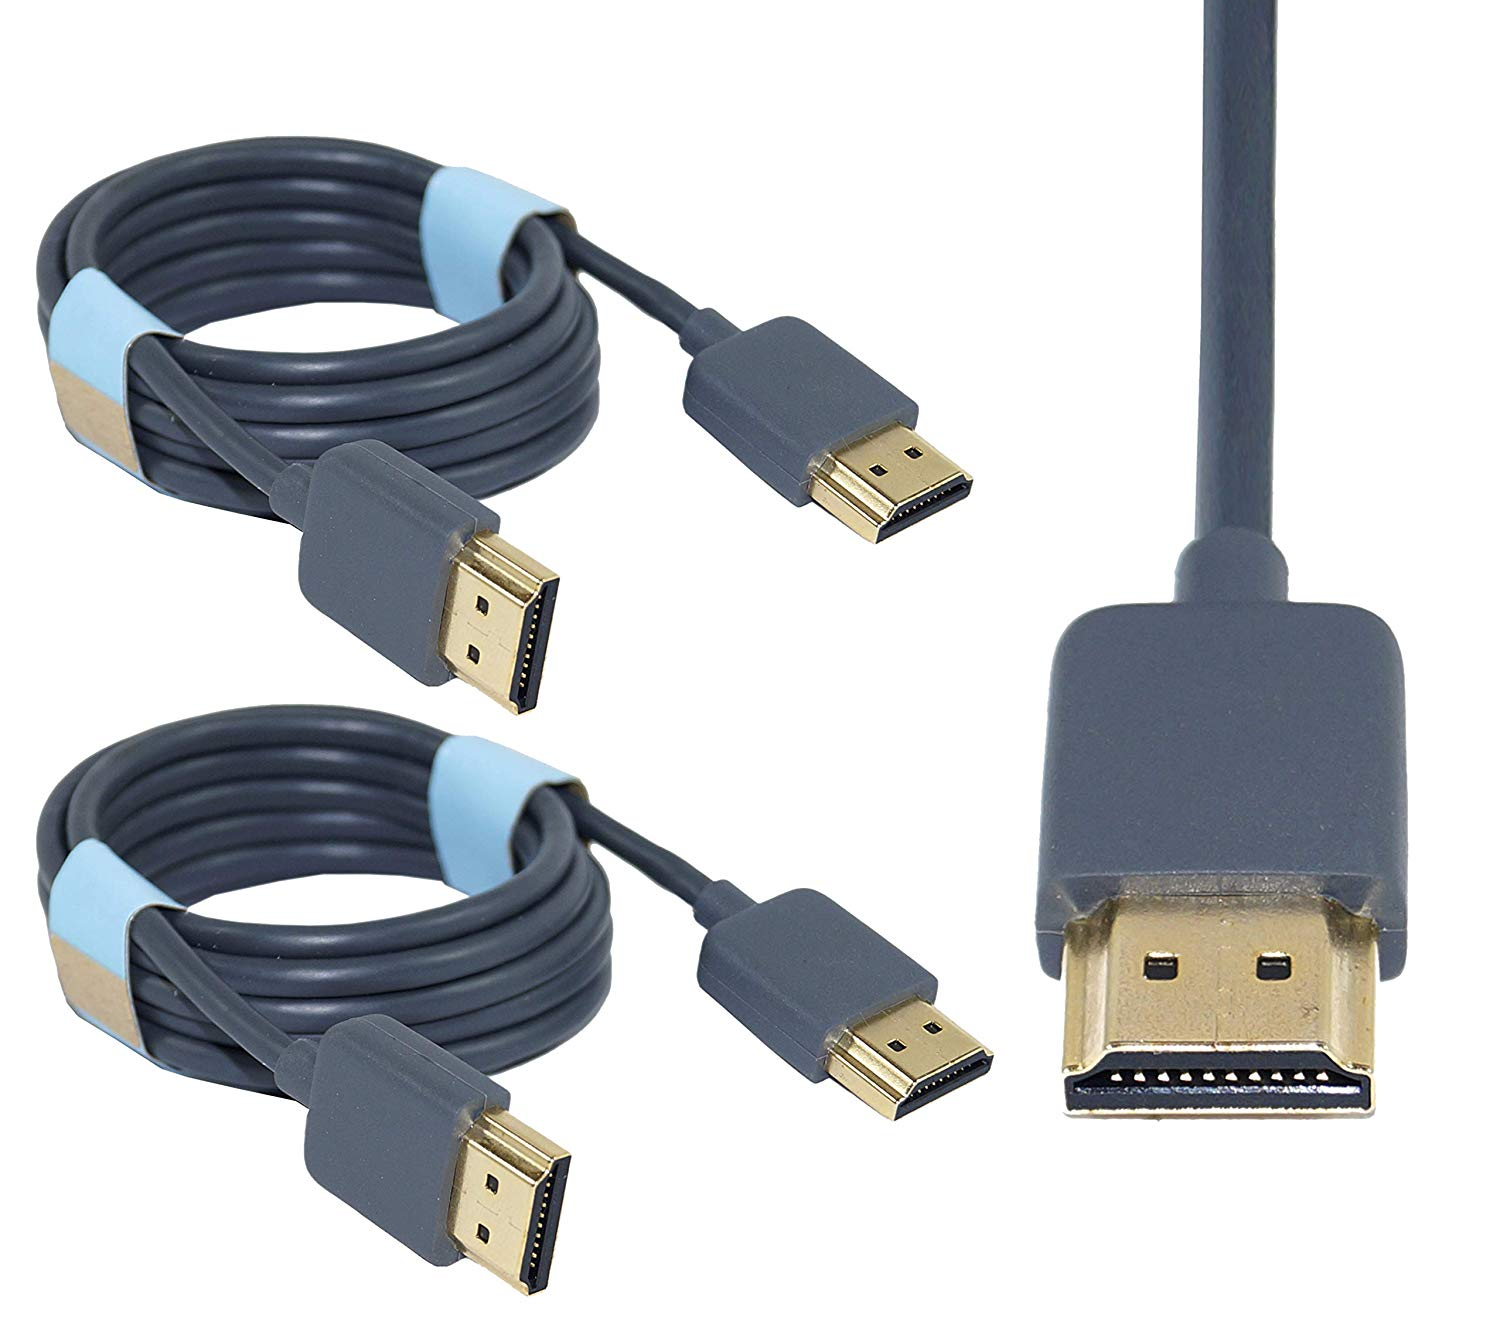 Storite1.5M High-Speed HDMI Male to Male  2 Pack Cable